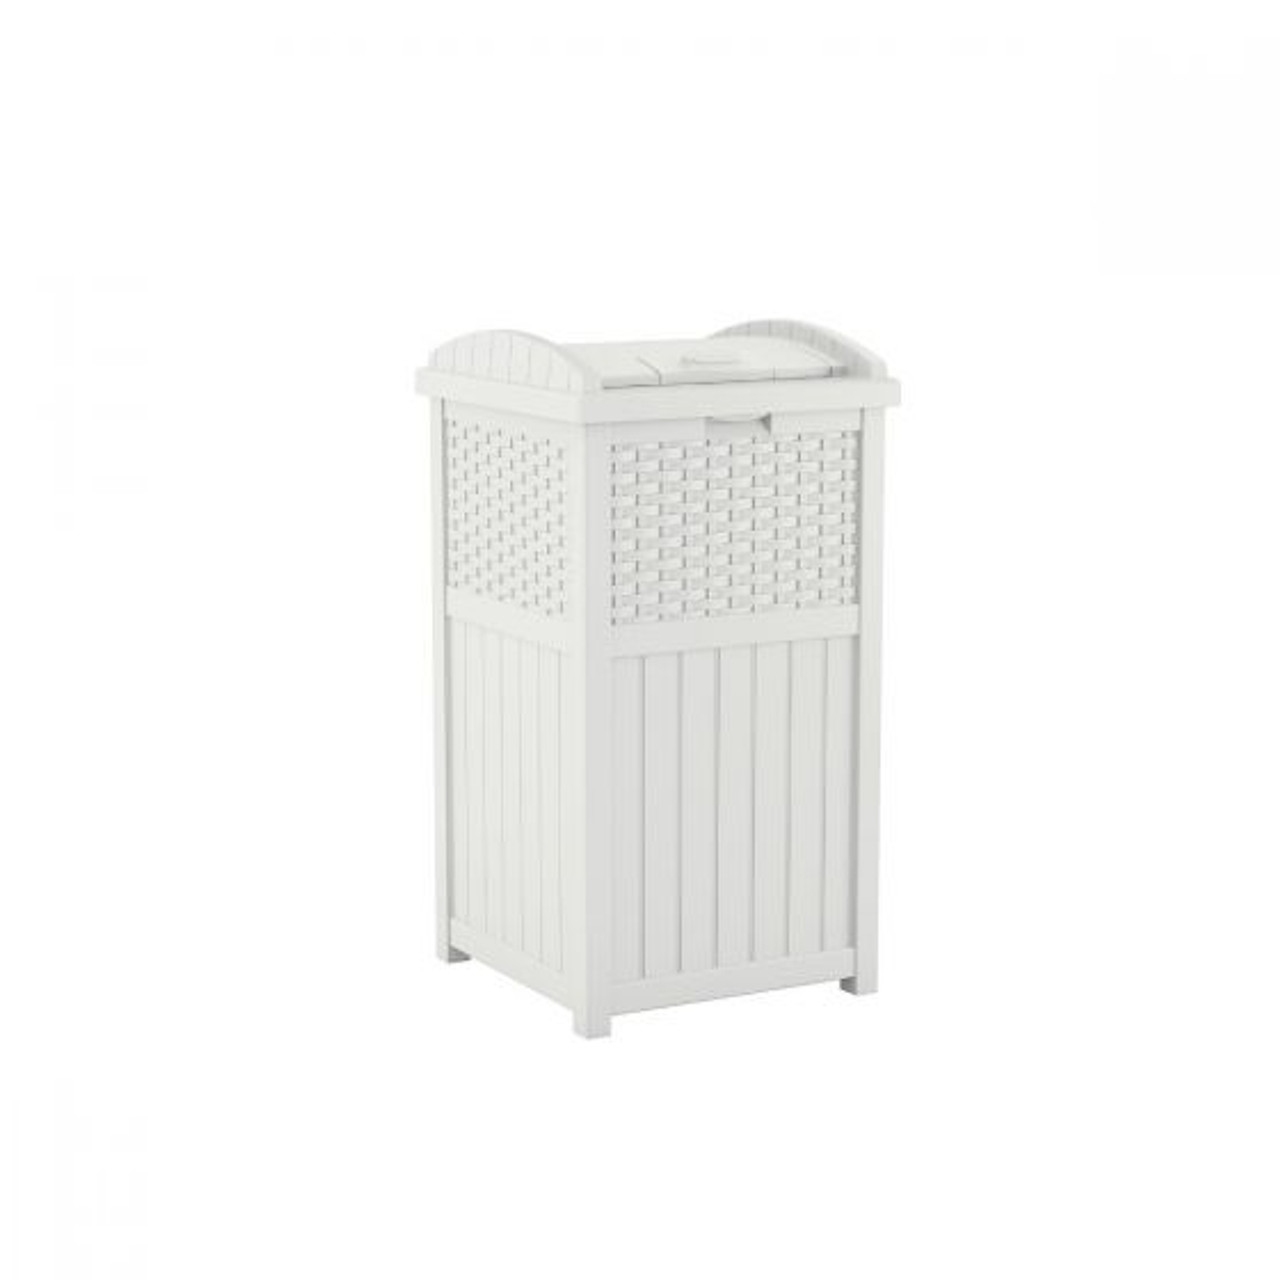 Wicker White Trash Can GHW1732WH for Deck or Patio